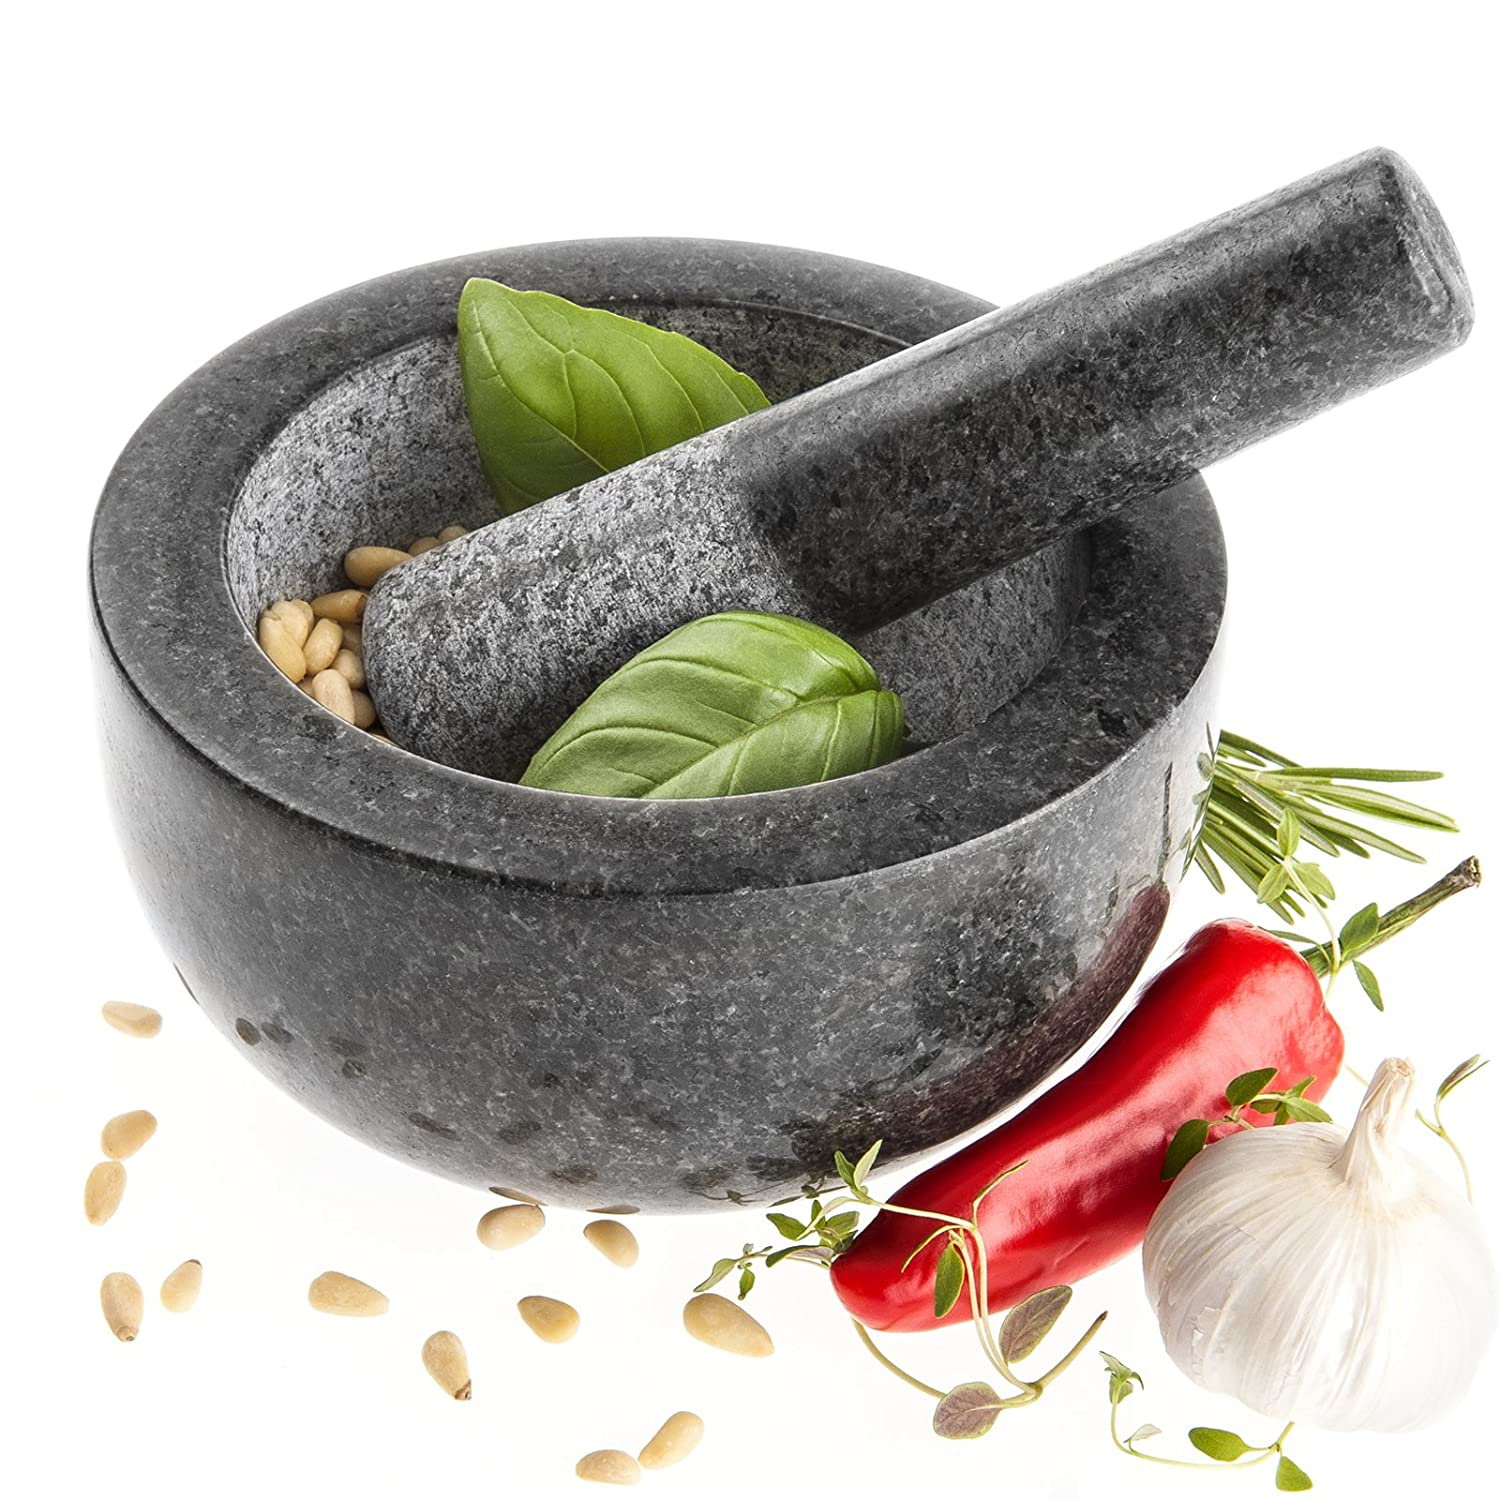 Savisto Premium Solid Granite Pestle and Mortar - Large 15.5cm Diameter SV-KITC-Z001